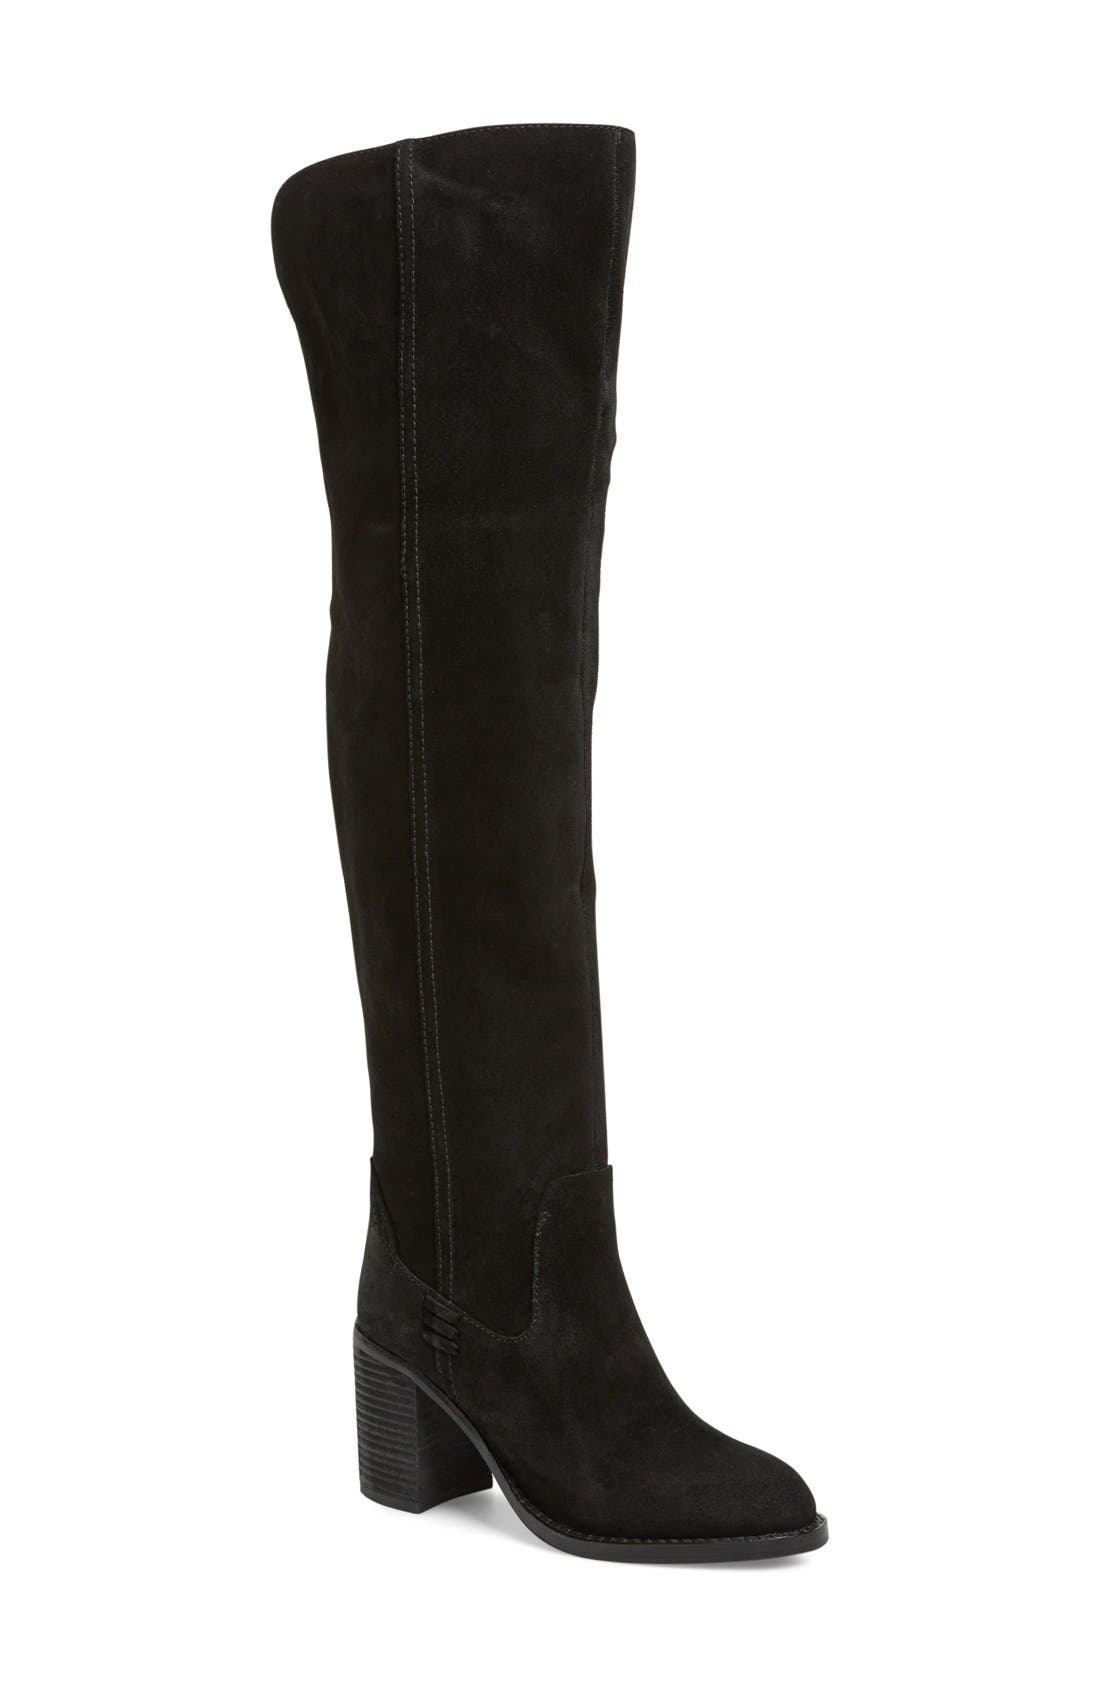 Alternate Image 1 Selected - Jeffrey Campbell 'Raylan' Over the Knee Boot (Women)